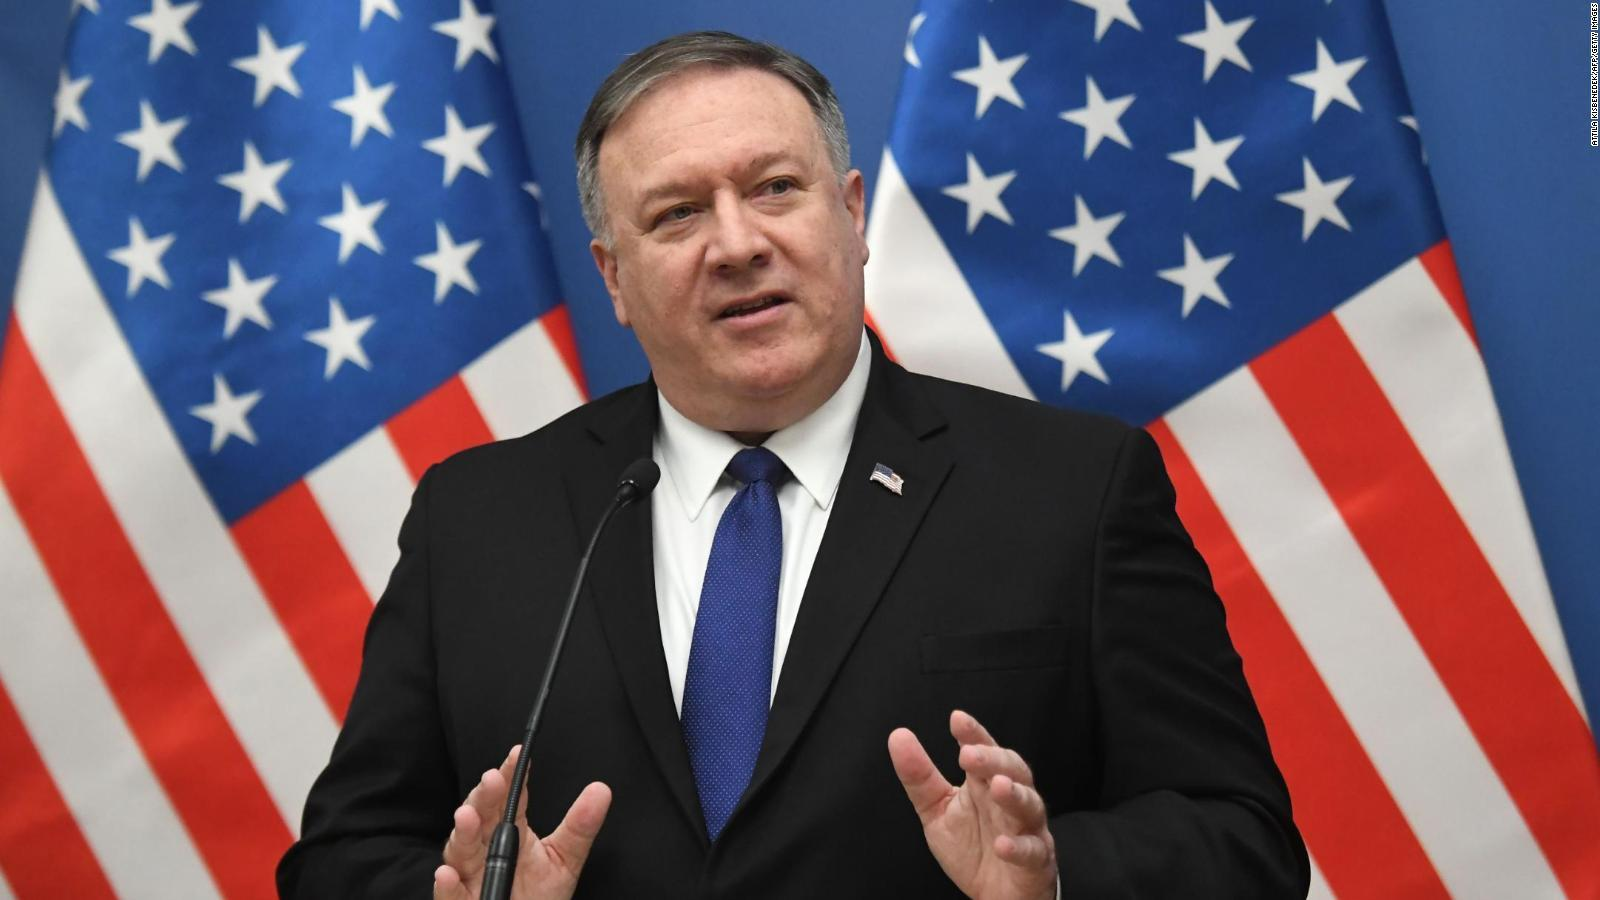 These 2 countries prevent ceasefire in Syria - Pompeo